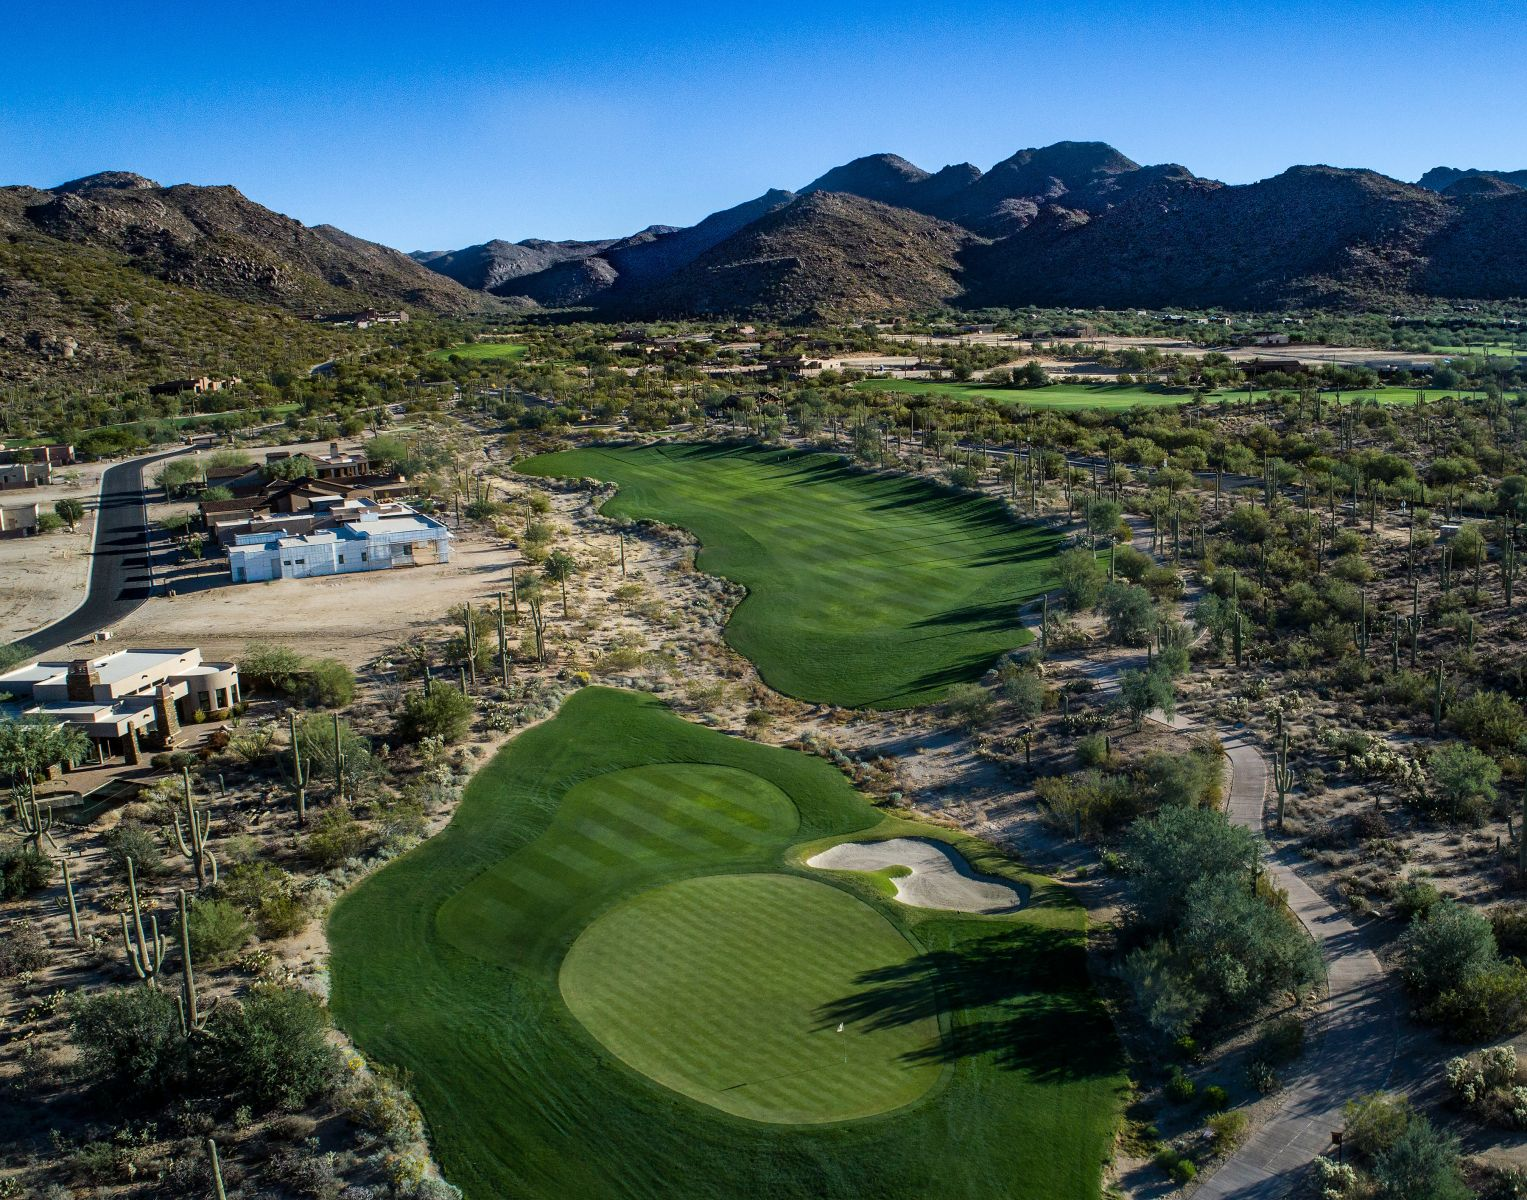 Aerial view of hole 7 on the Wild Burro course